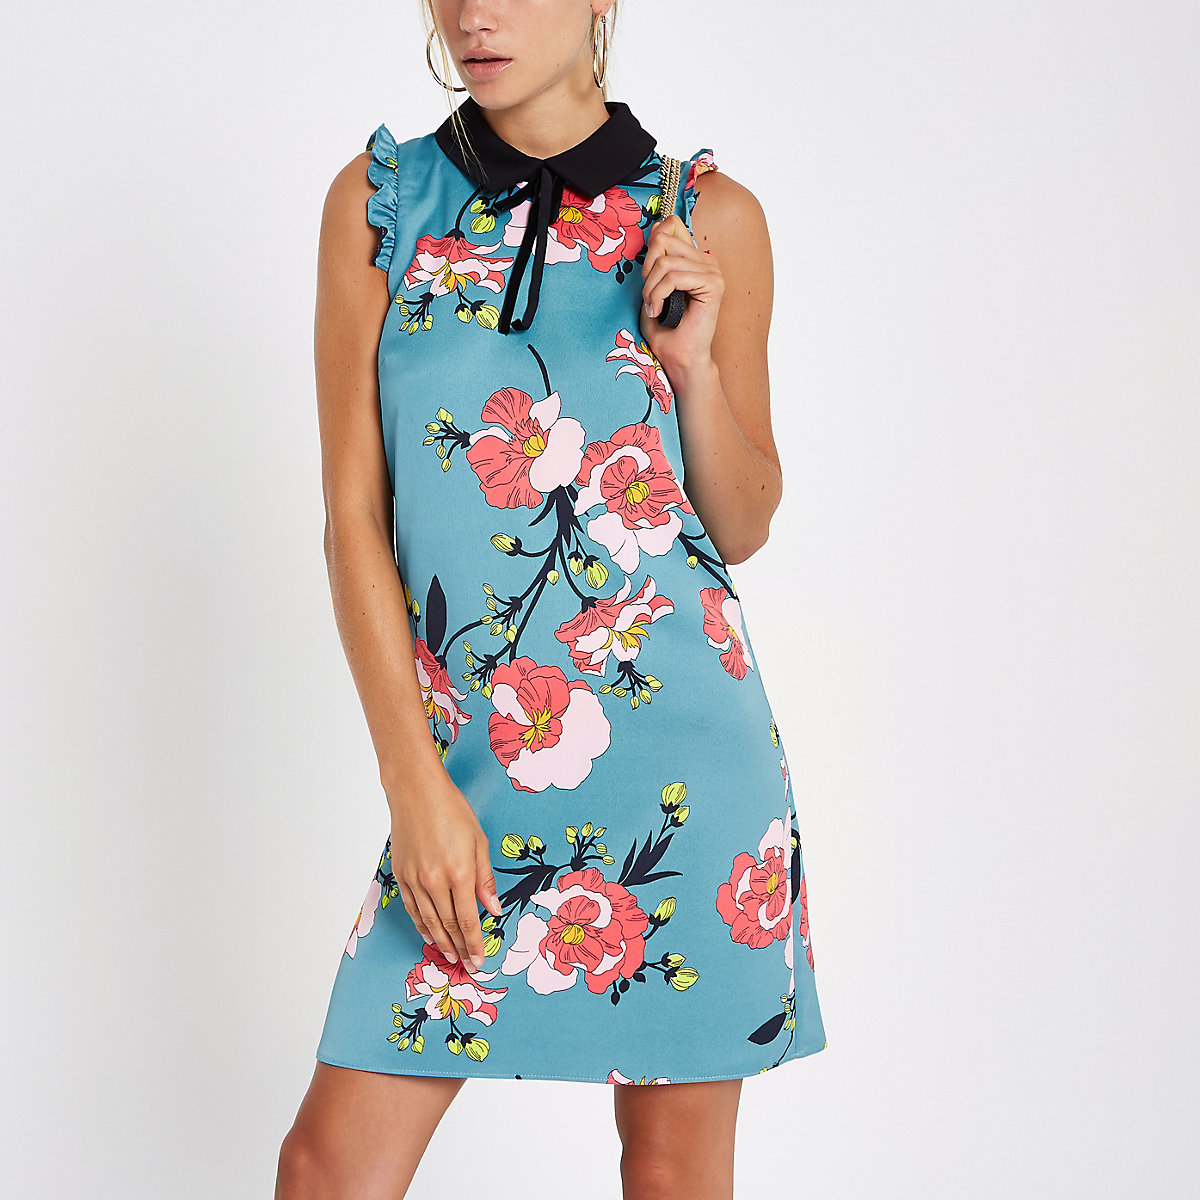 Blue floral sleeveless swing dress